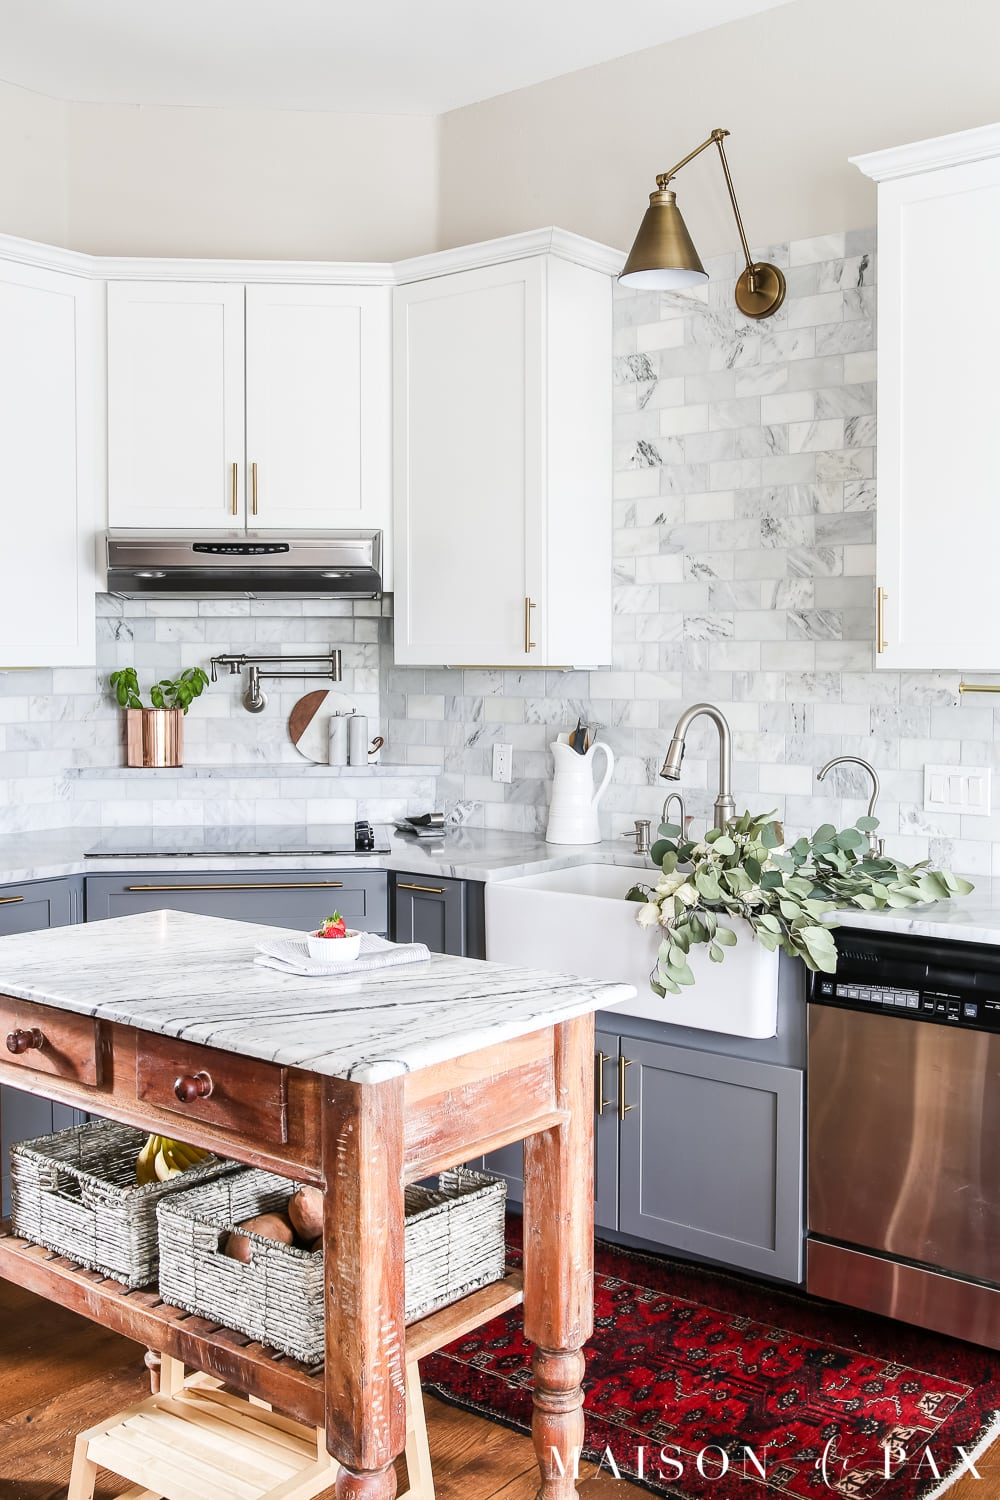 Spring Kitchen Refresh: Get 5 easy tips to spruce up your kitchen for spring without buying new stuff! #springkitchen #kitcheninspo #marblekitchen #kitchendesign #springdecor #springdecorating #kitchendecor #twotonekitchen